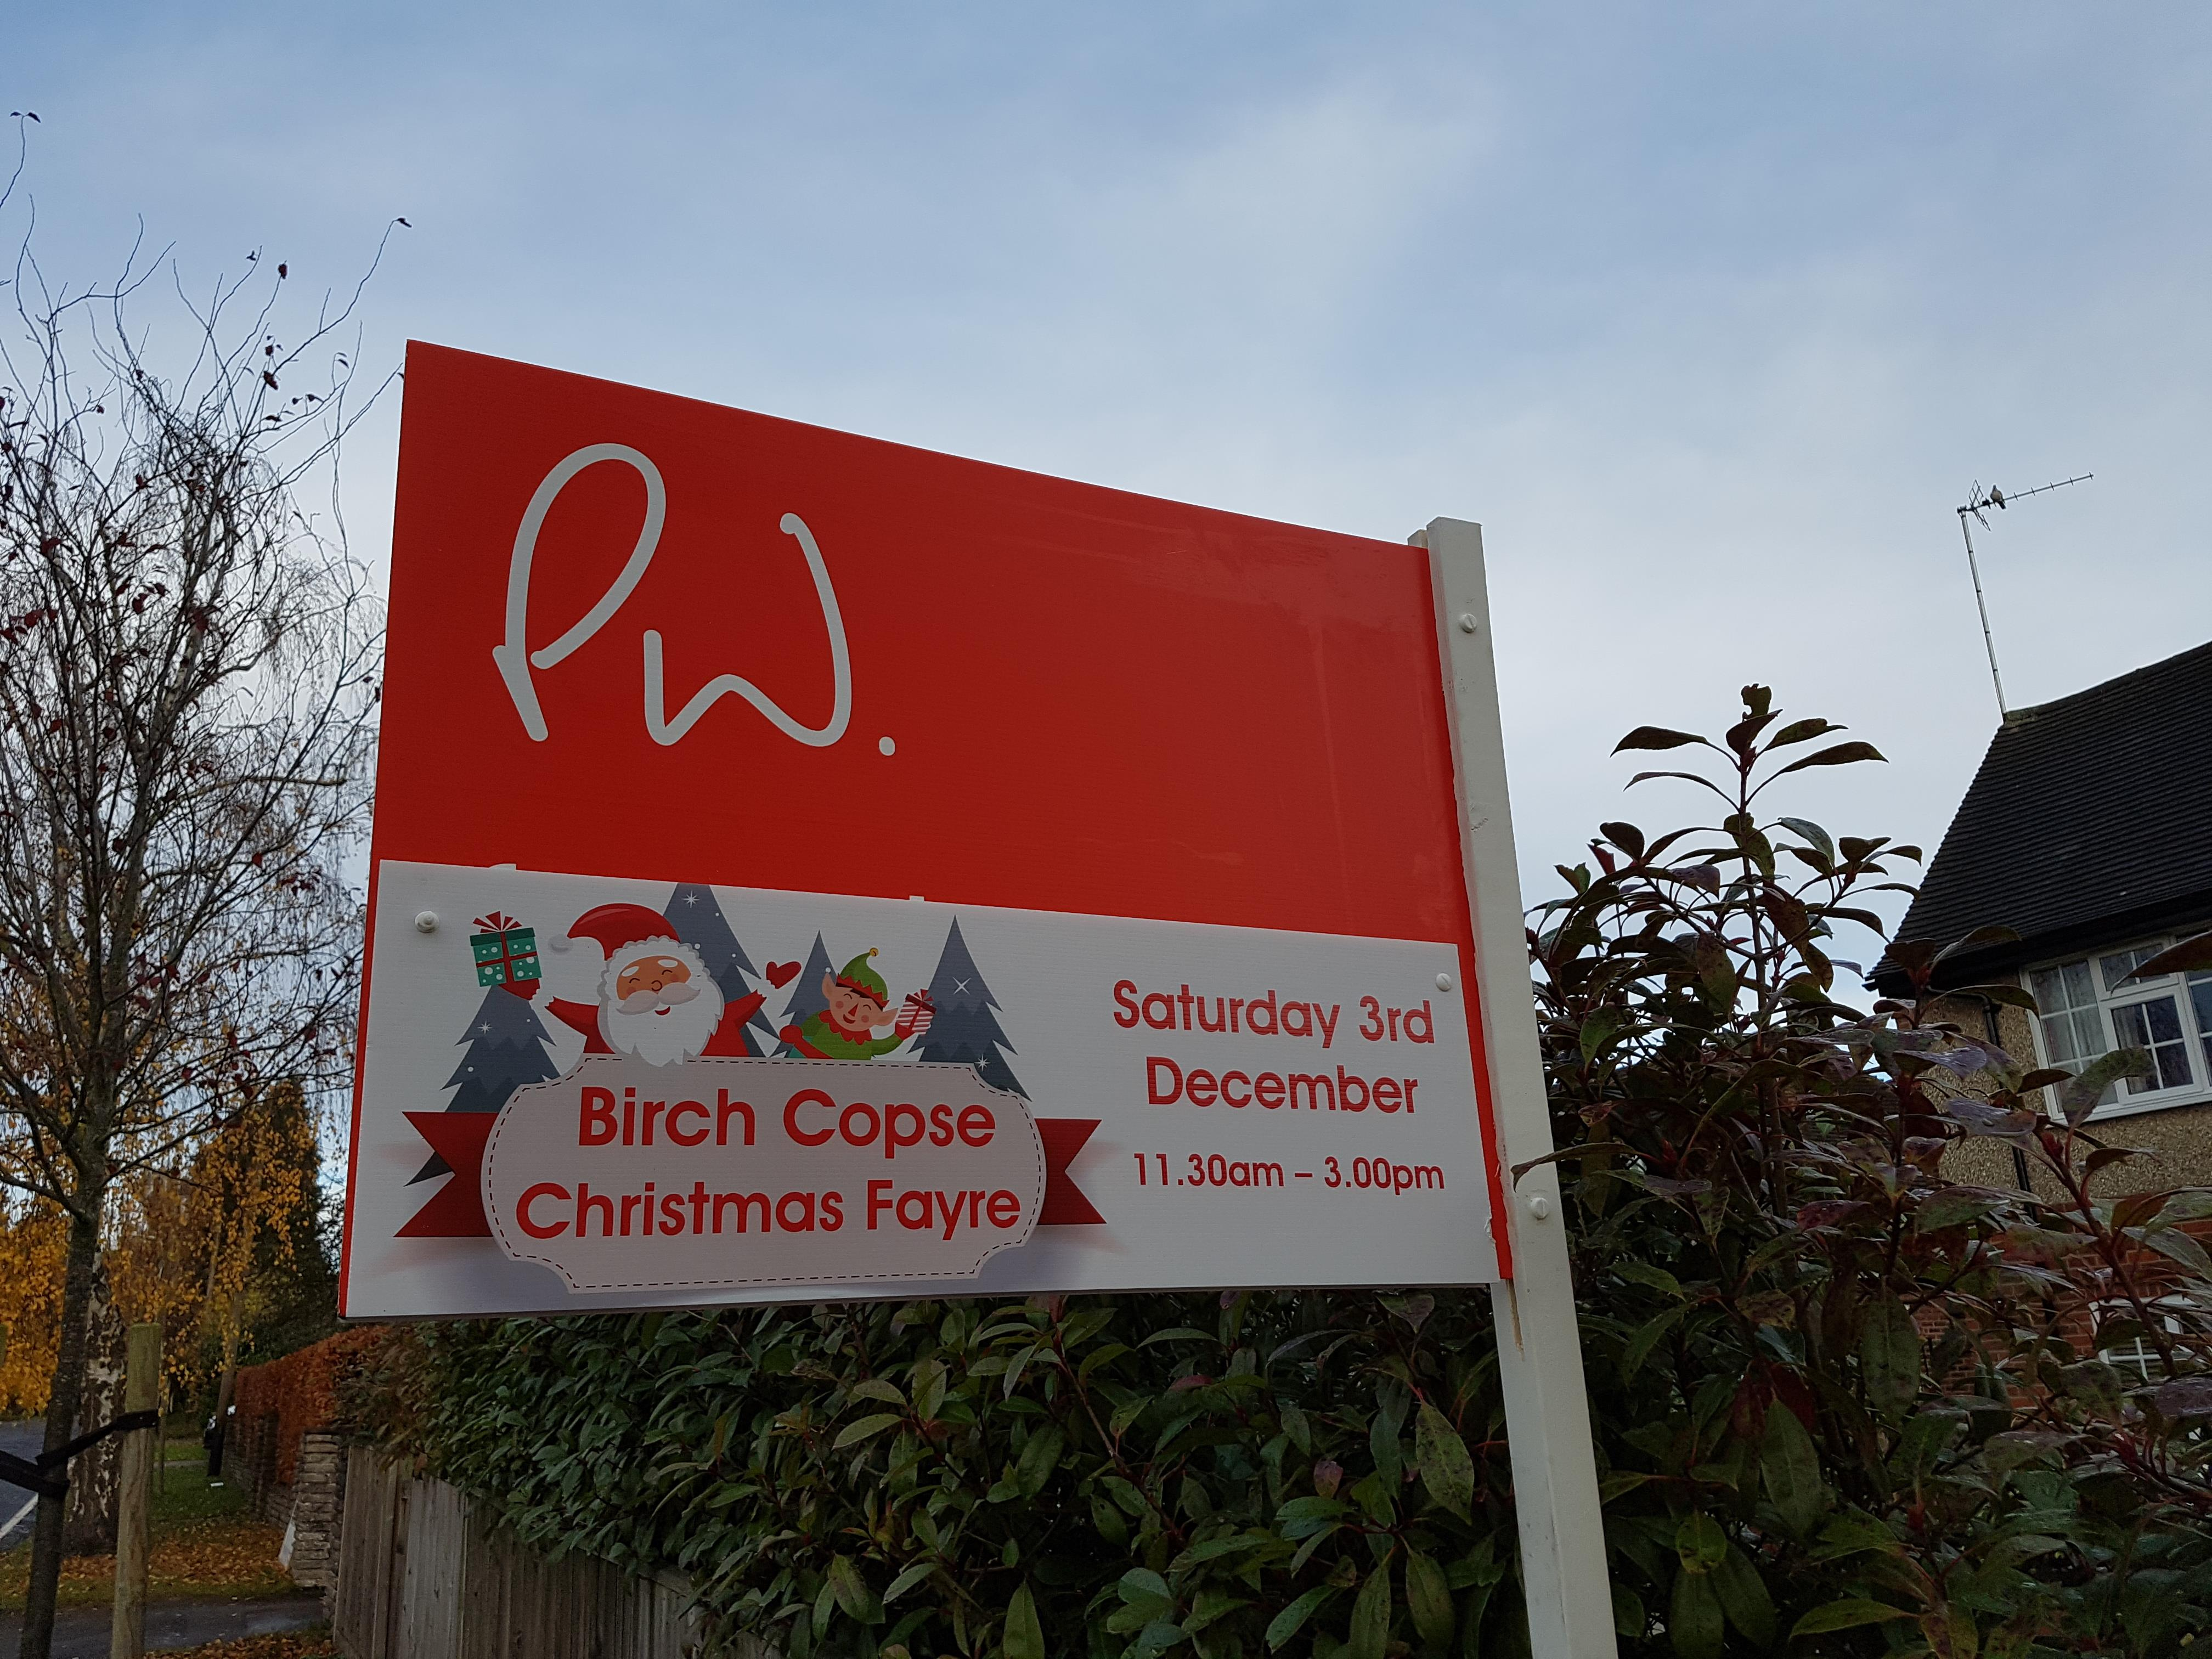 Birch Copse Primary School Christmas Fair